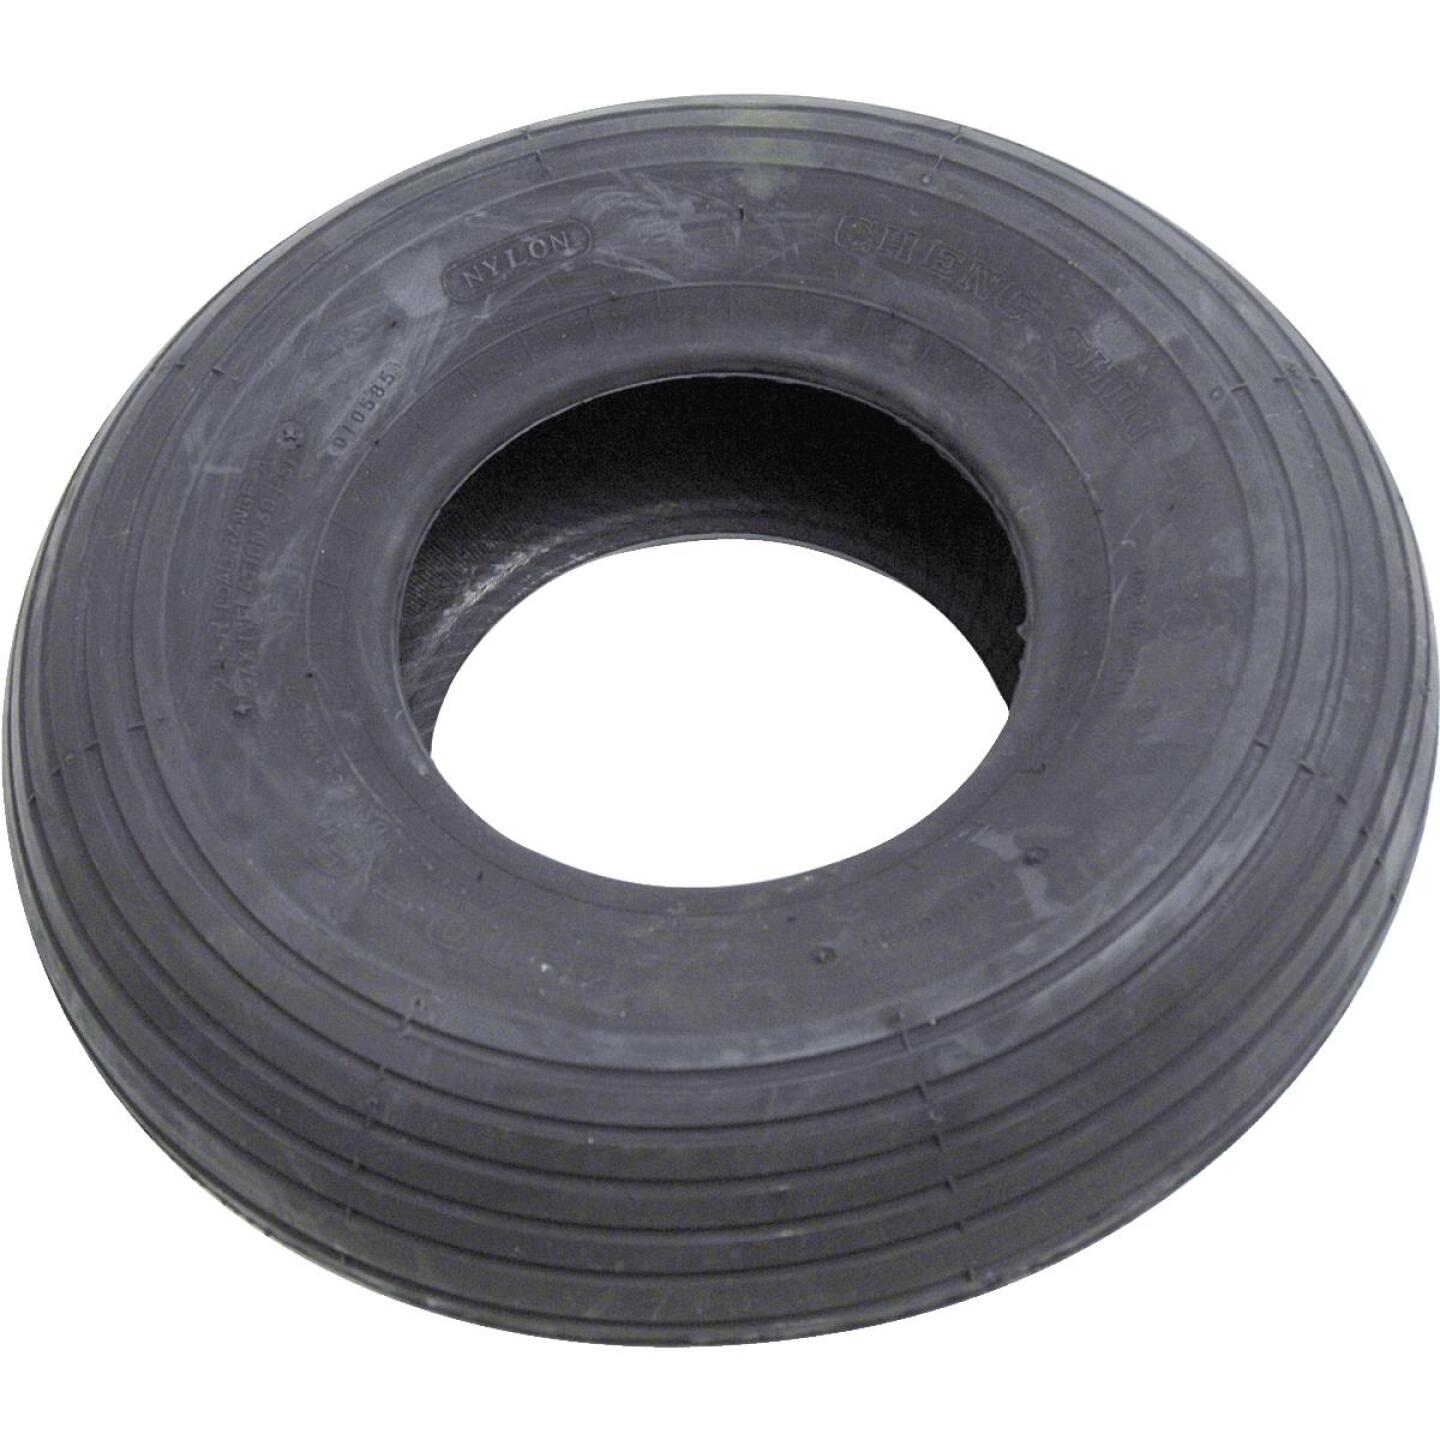 Arnold 480/400 x 8 In. Off-Road Replacement Tire Image 1